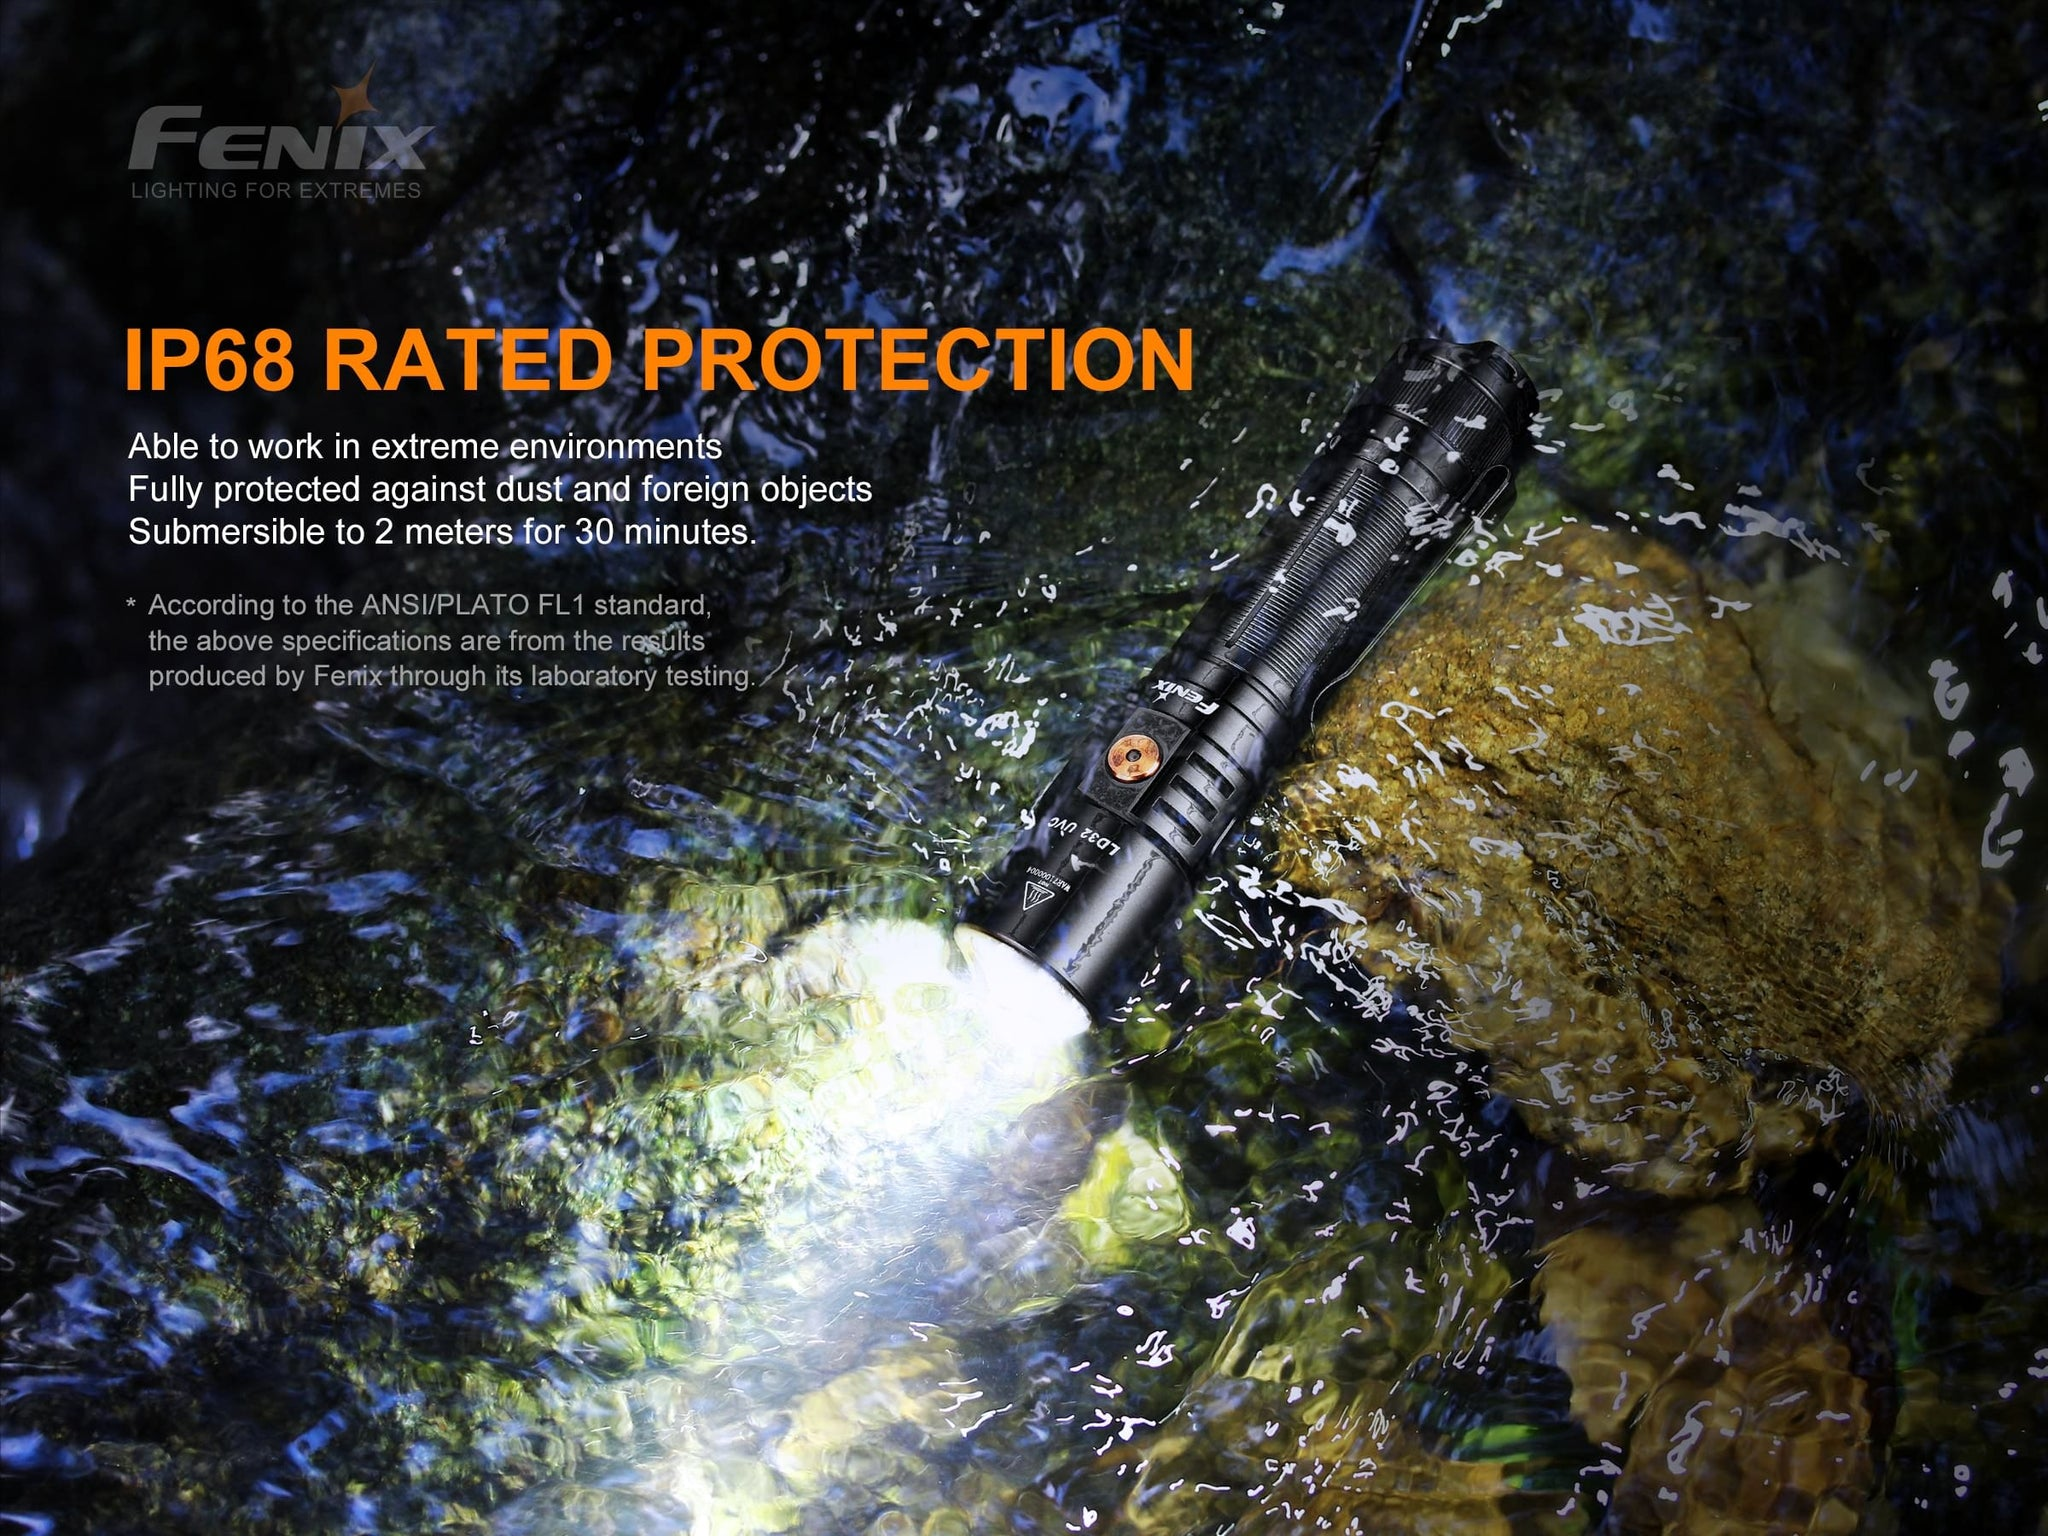 Fenix LD32 UVC LED Flashlight in India, Best UVC Torch Light for Disinfection. Portable UVC Rechargeable Light in India at LightMen